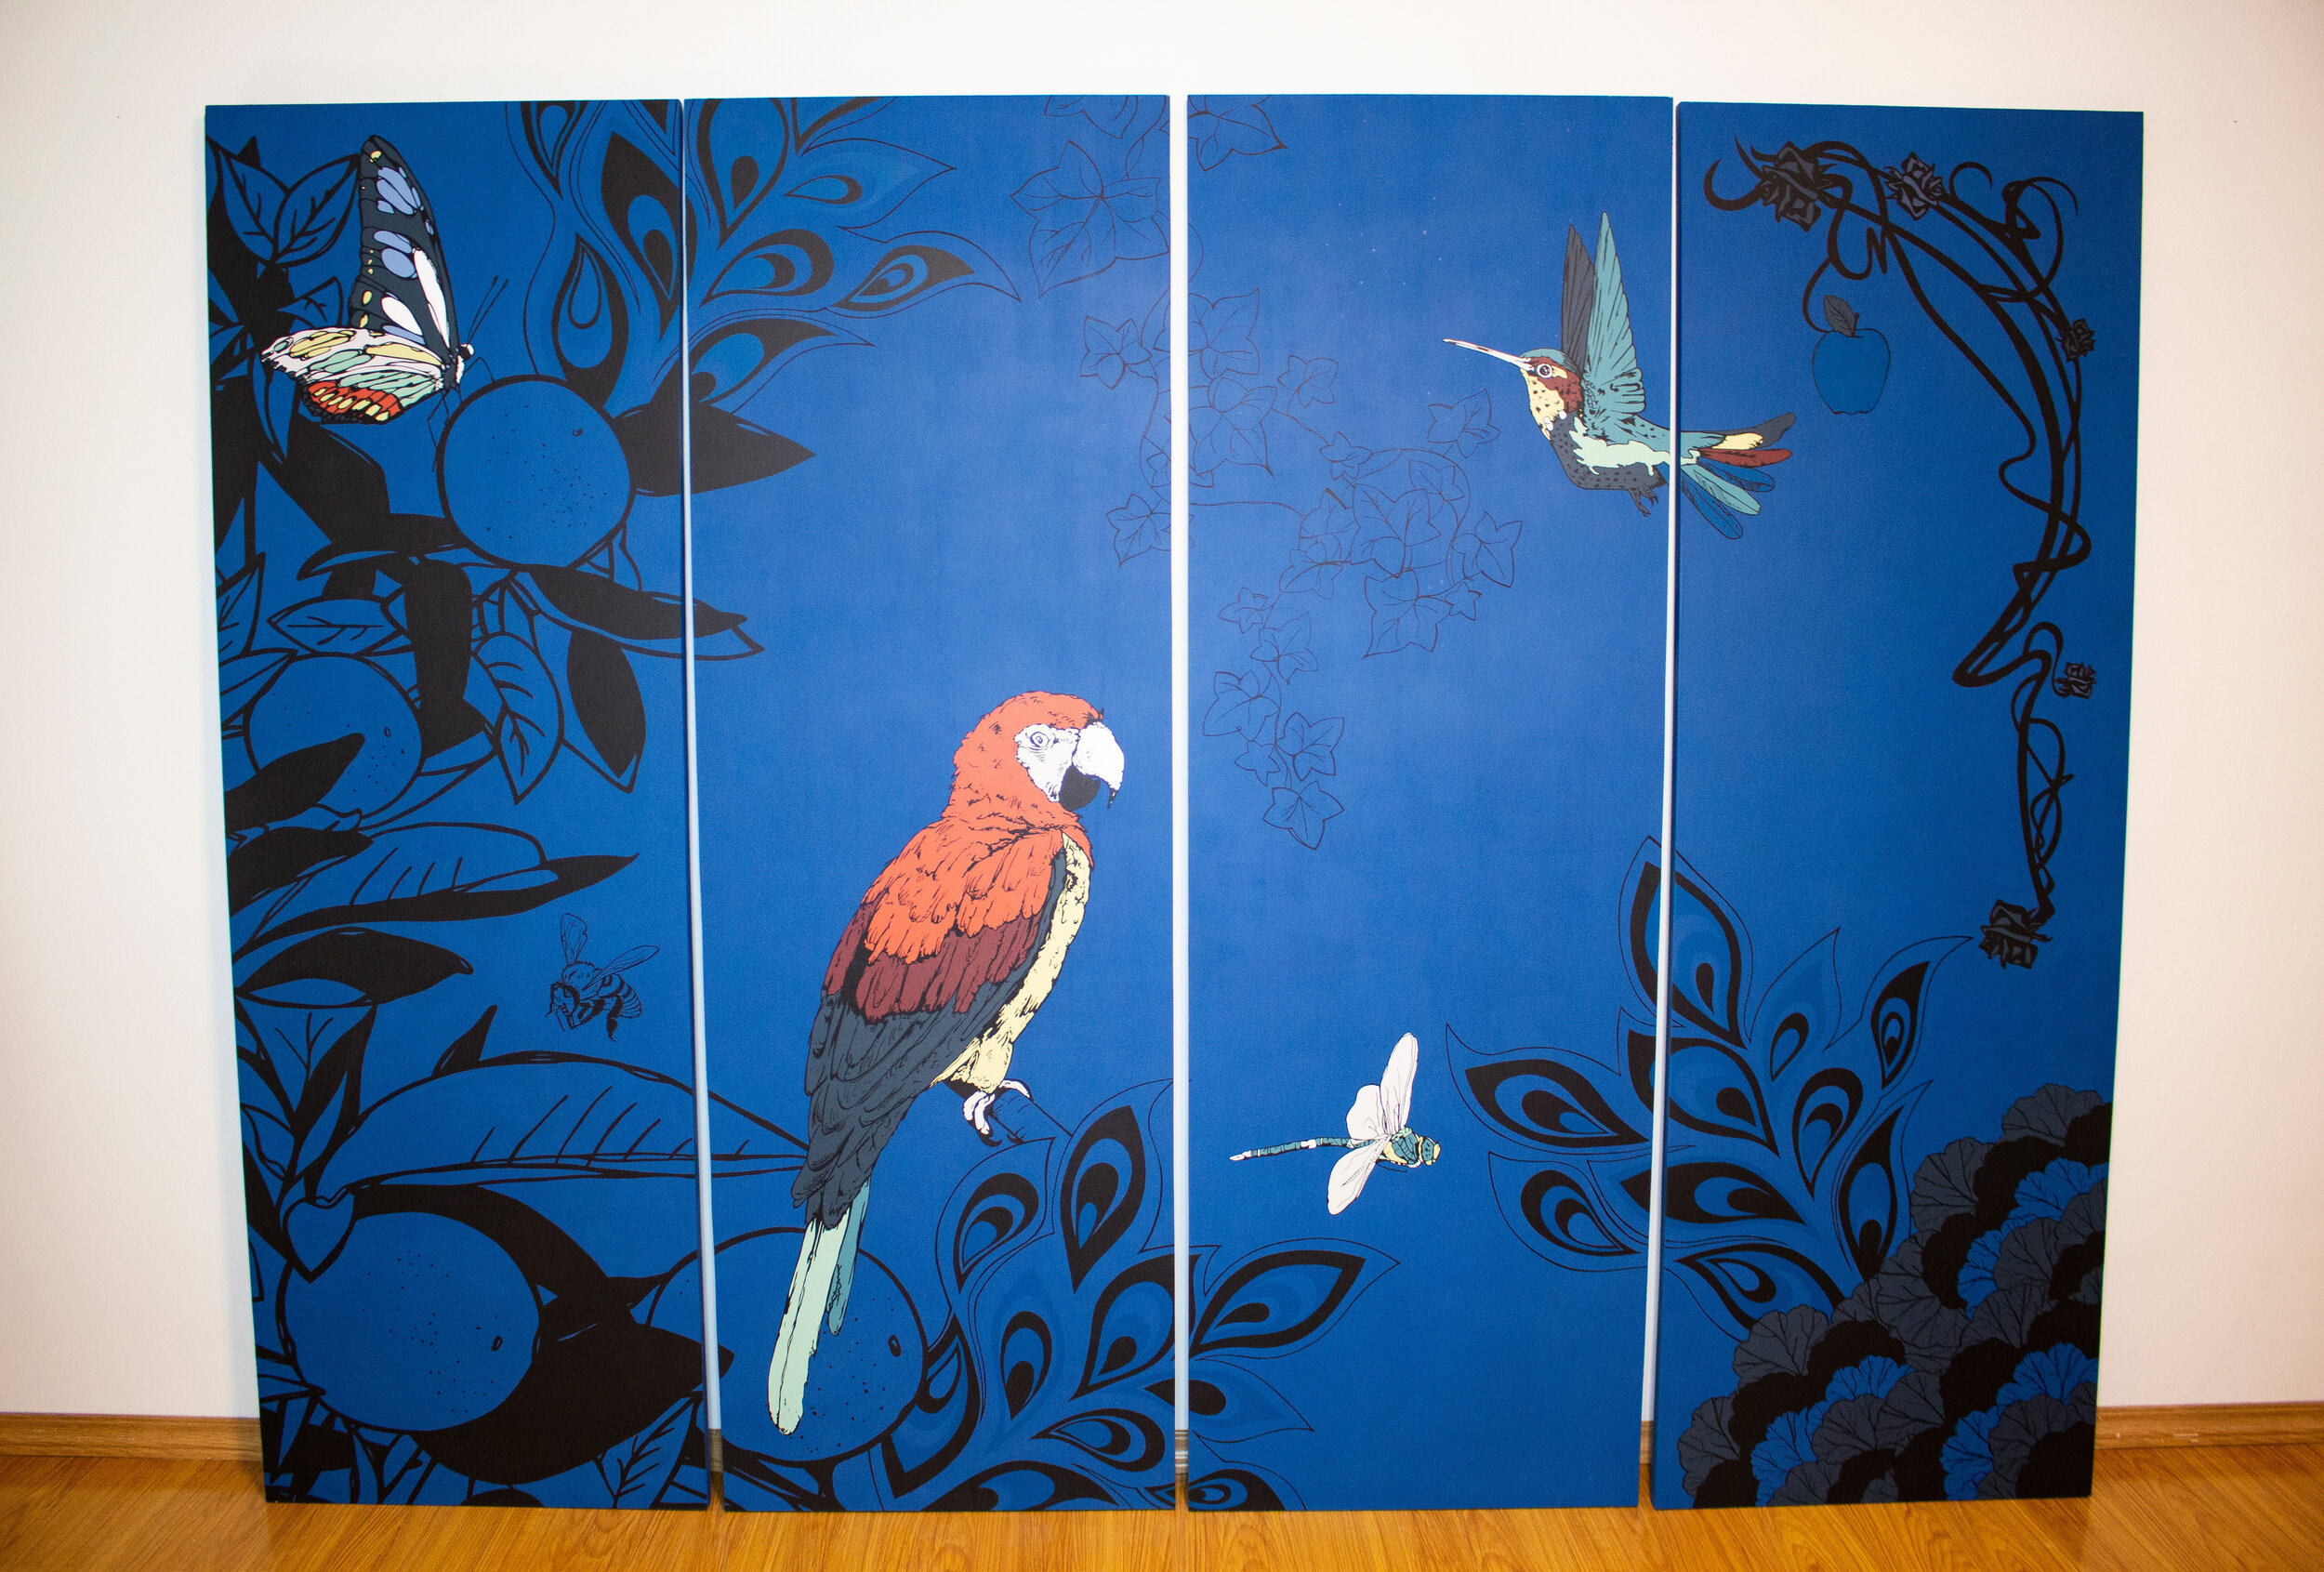 The hand-painted Paravent (screen / room divider) front left design. This is photographed before delivery to the woodworker.